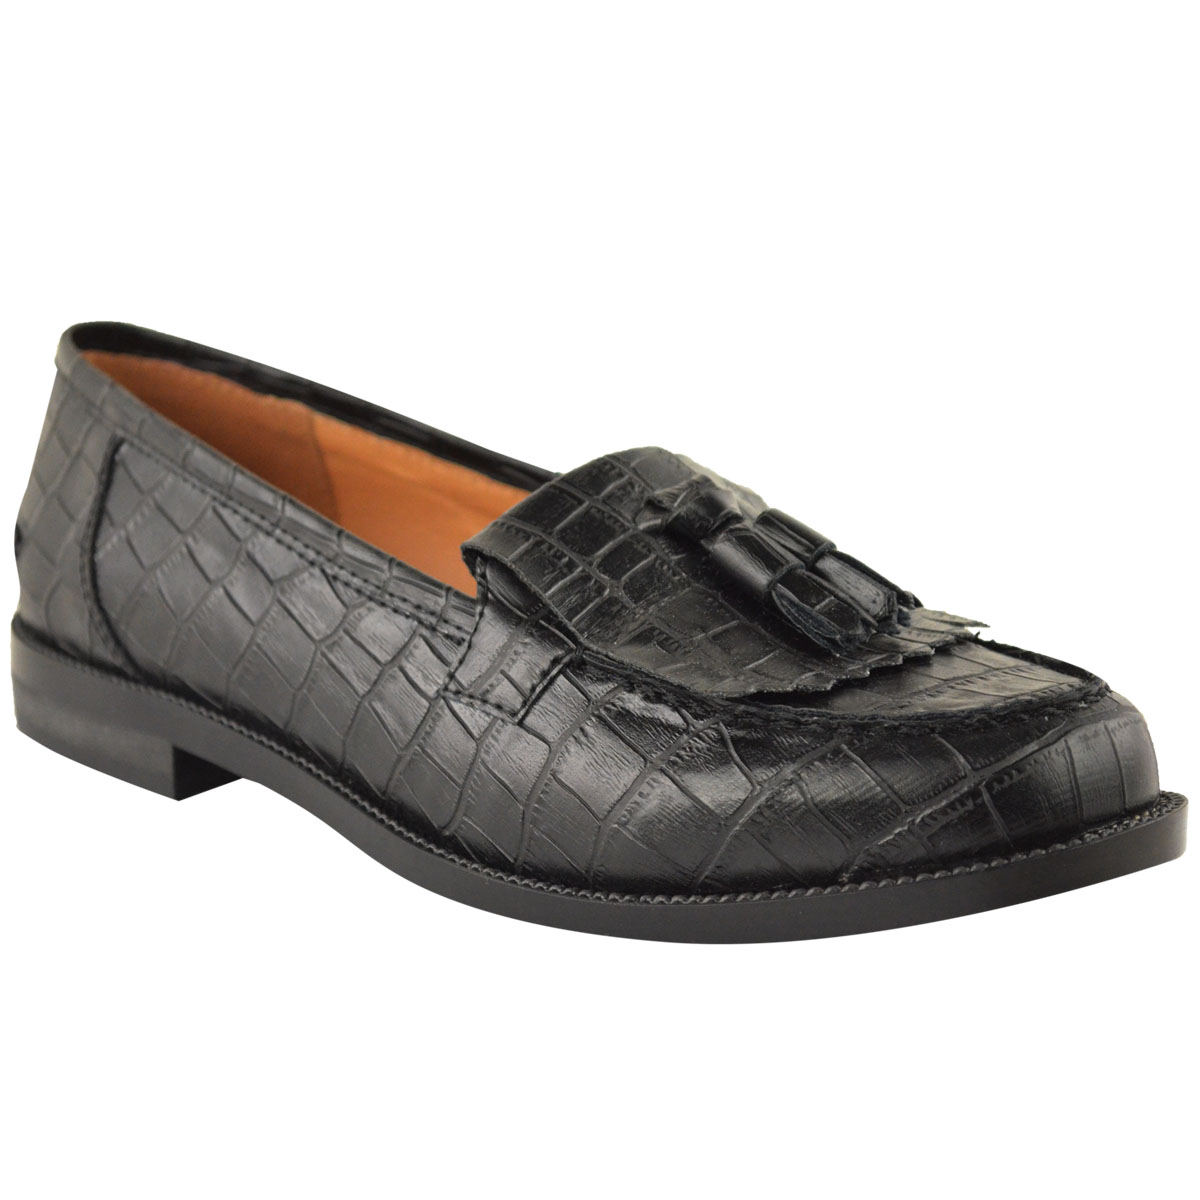 WOMENS-LADIES-OFFICE-FLAT-CASUAL-PATENT-FAUX-LEATHER-